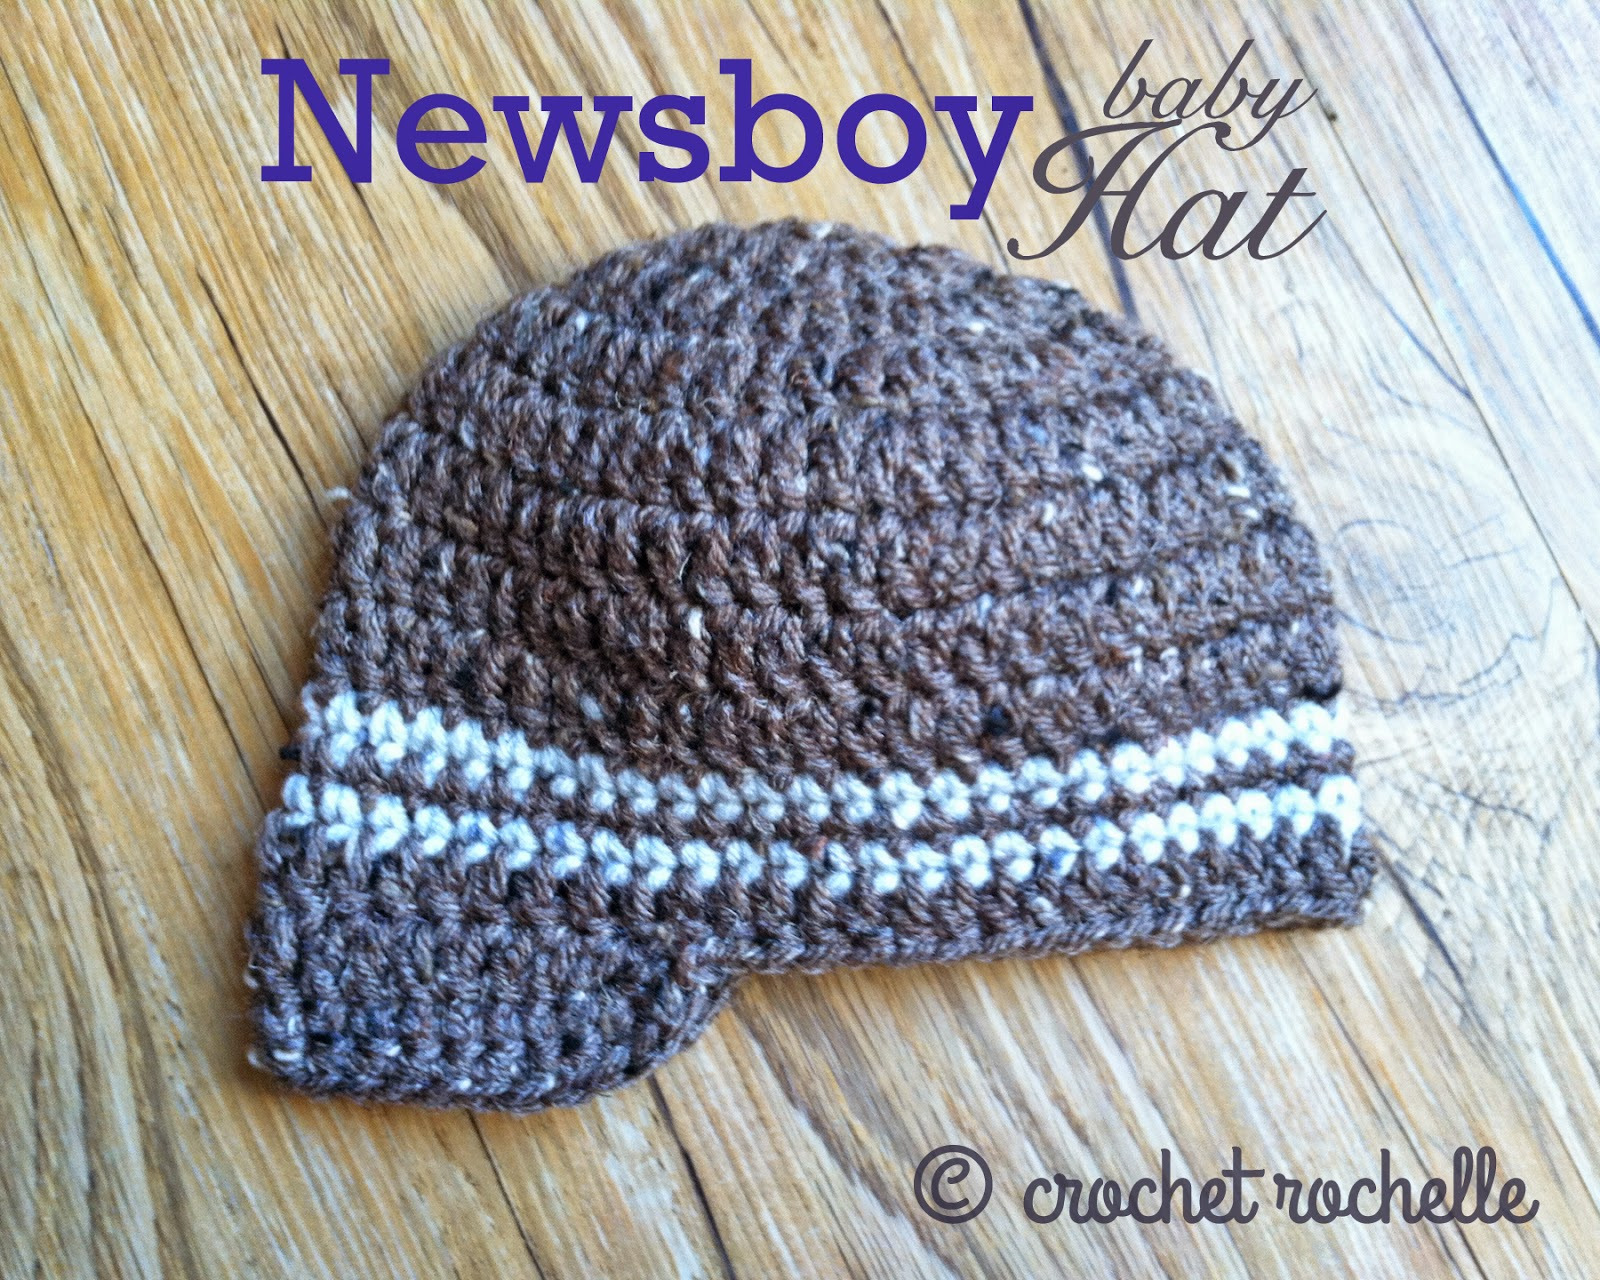 Crochet Baby Hat Pattern Newsboy : Crochet Rochelle: Newsboy Baby Hat Pattern